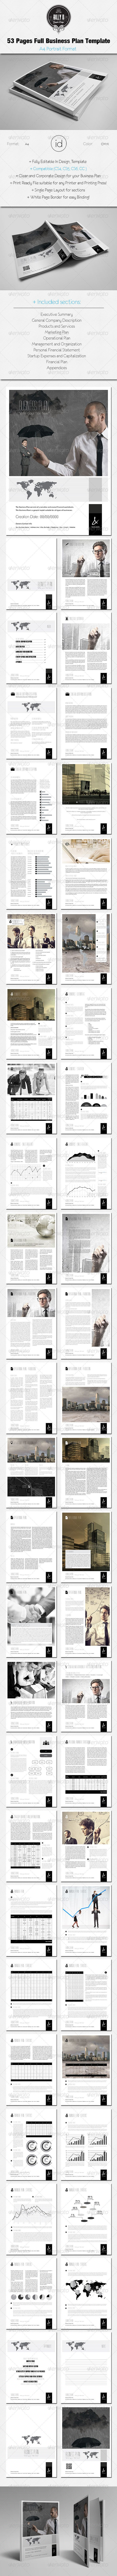 53 Pages Full Business Plan Template - A4 Portrait